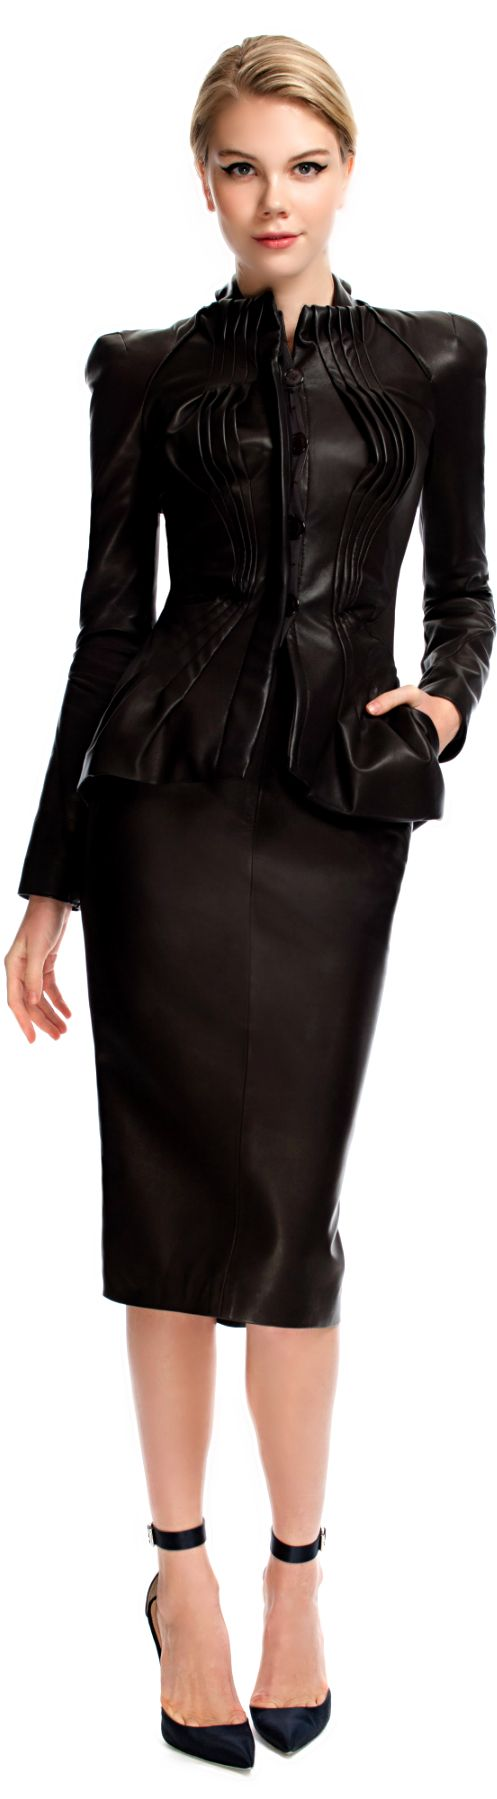 Absolutely Gorgeous, espresso Leather Suit - Weekend Fashion, Career Fashion Can Be Worn At Company Event - I Must Have This Suit - Zac Posen